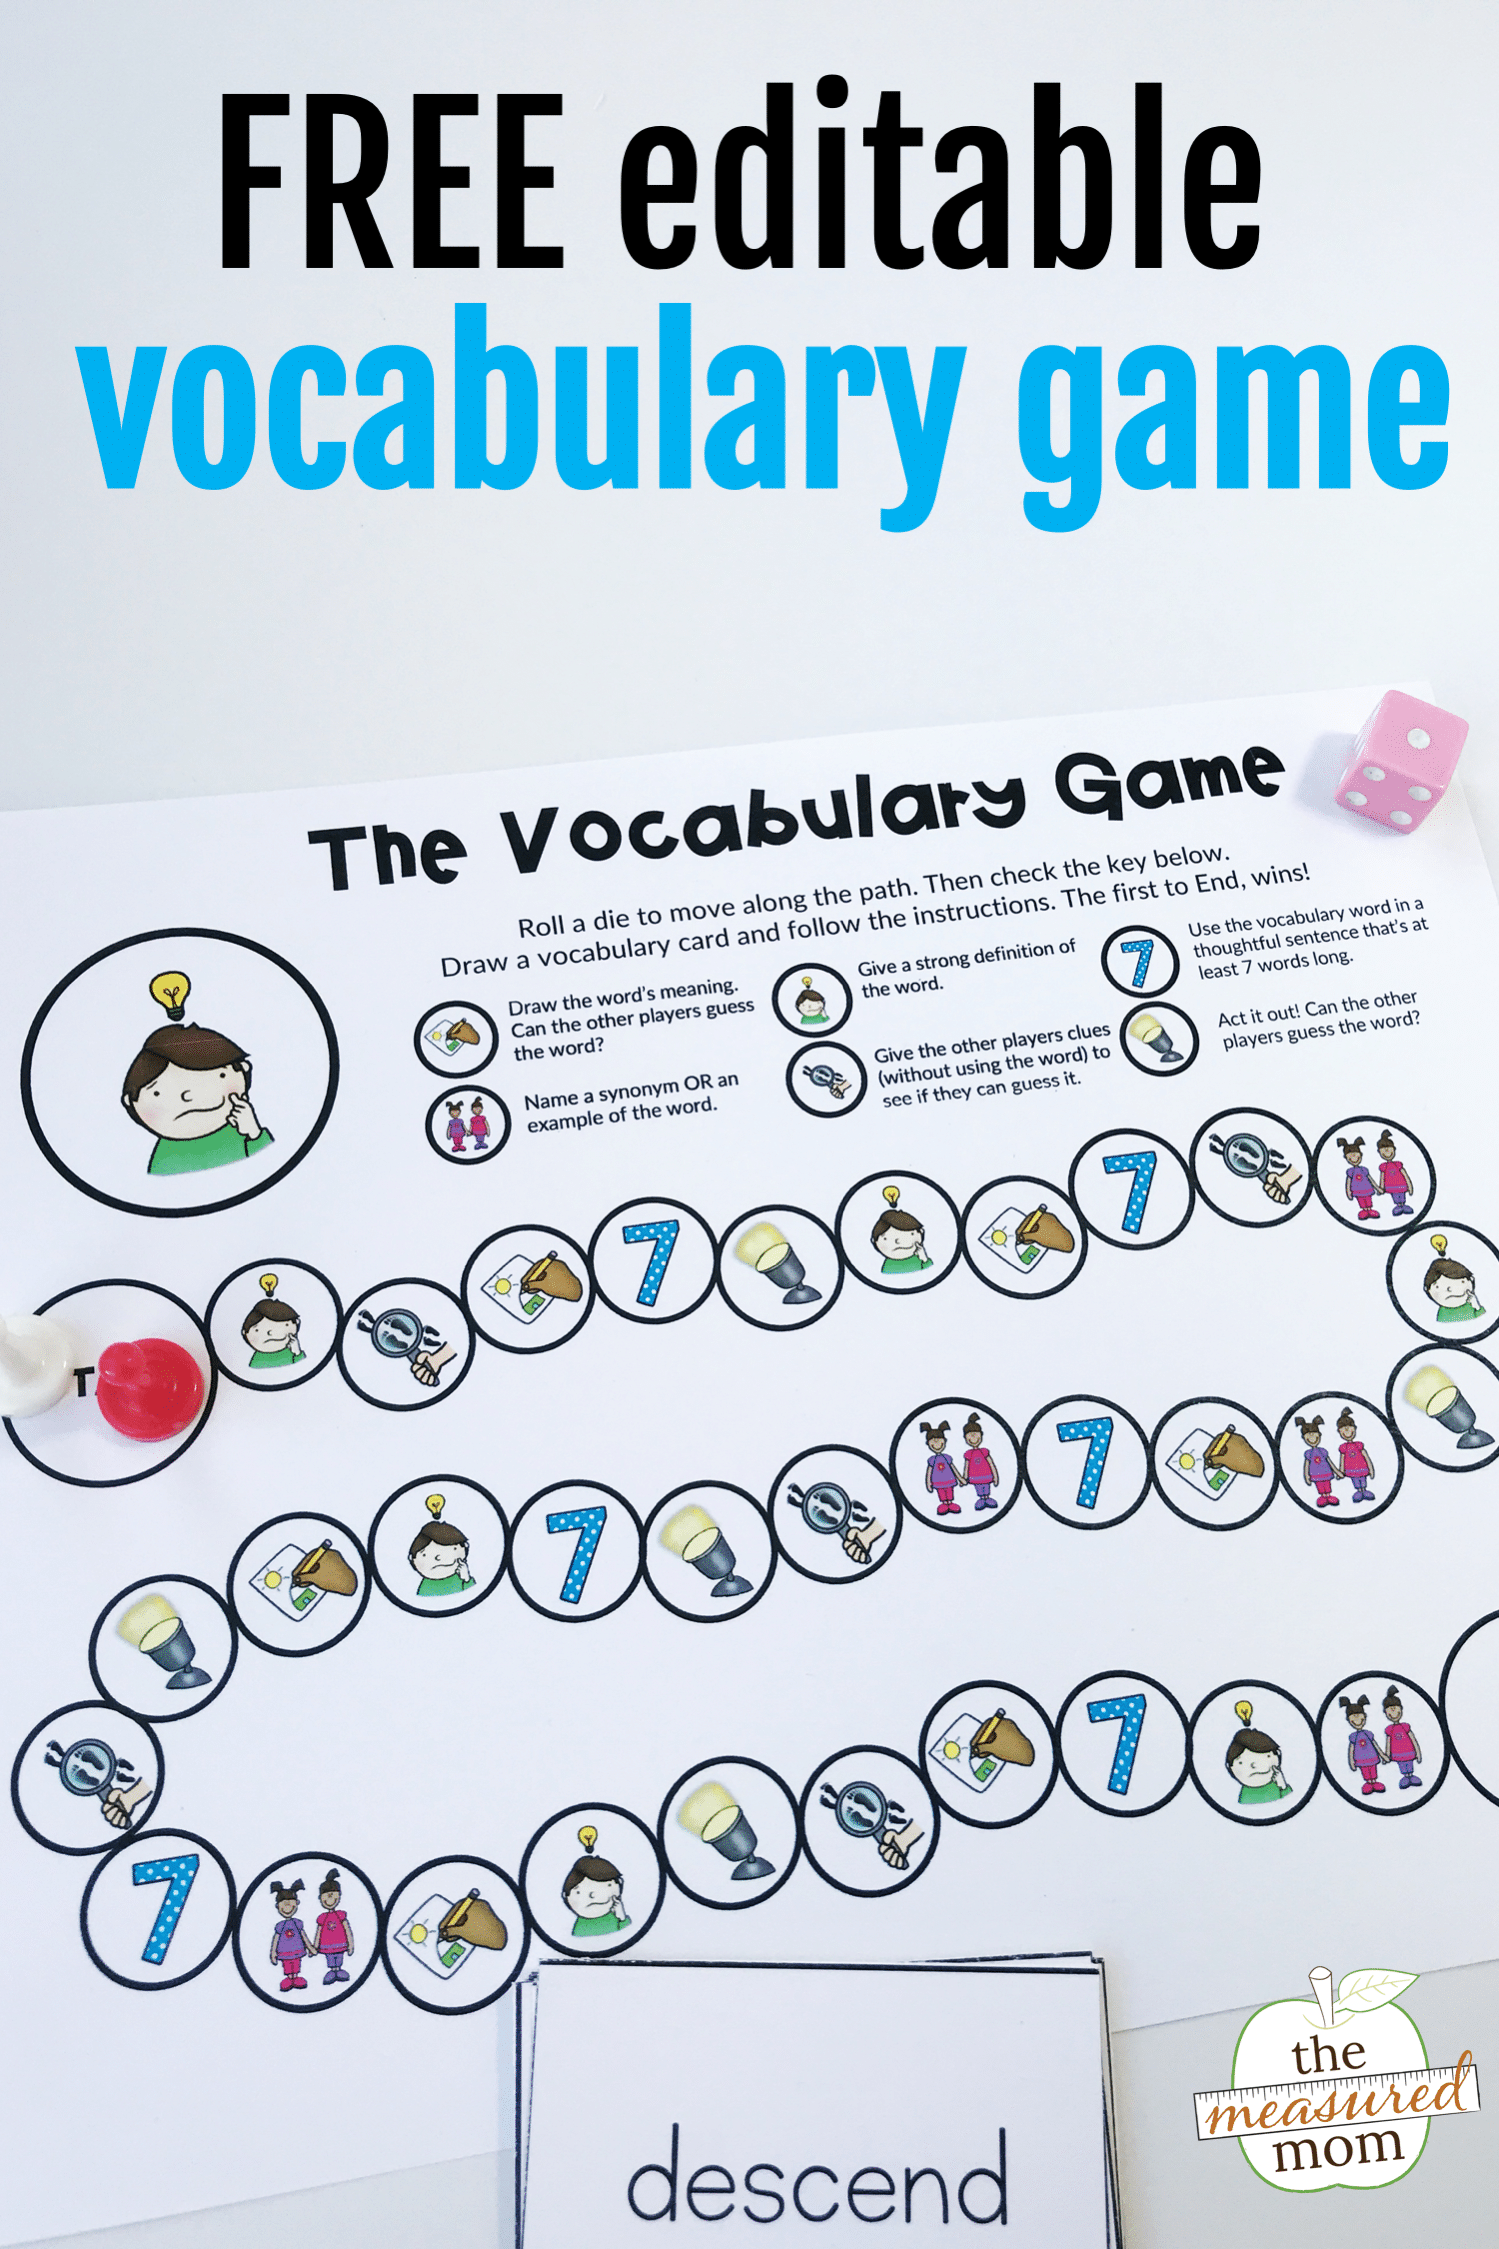 - Free Printable Vocabulary Game For Grades 3-5 (editable!) - The